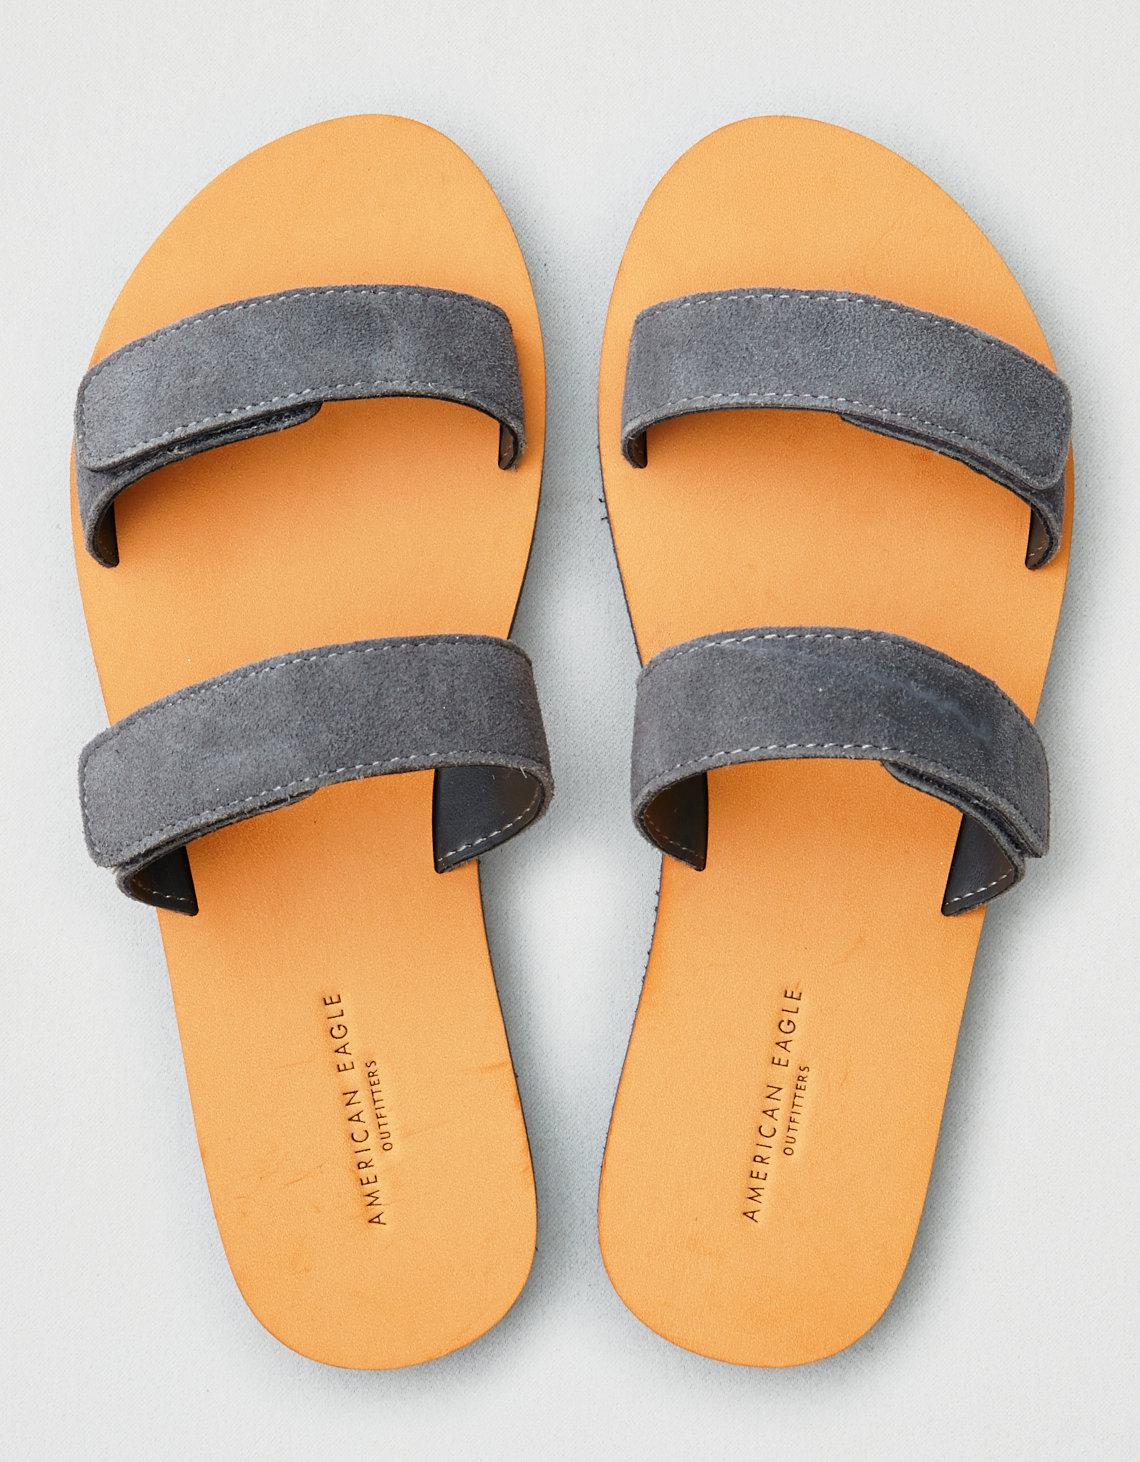 5a899d3c903 Lyst - American Eagle Suede Double Strap Sandal in Gray